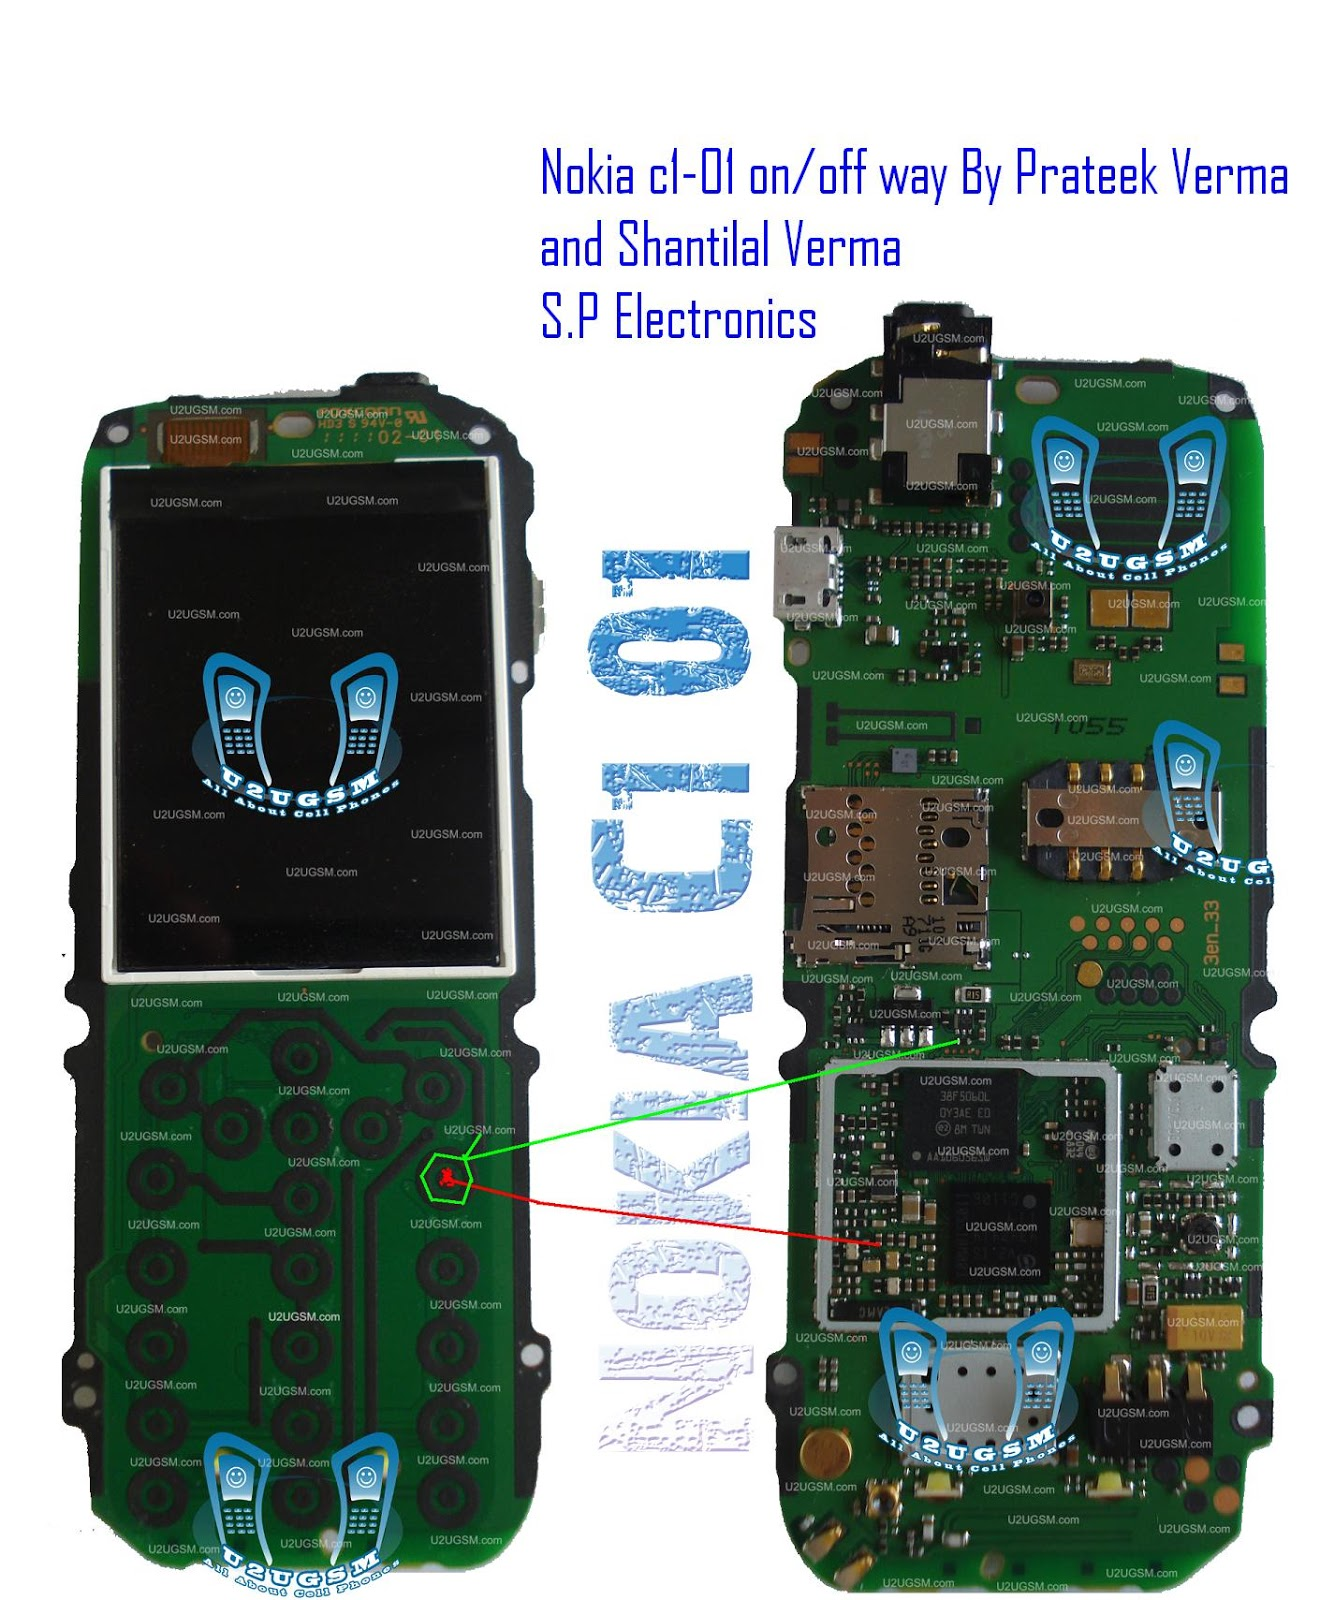 there are all tricks and tips for mobile notebook computer by rh prateekvermaa blogspot com nokia c1-01 circuit diagram pdf Nokia 6610